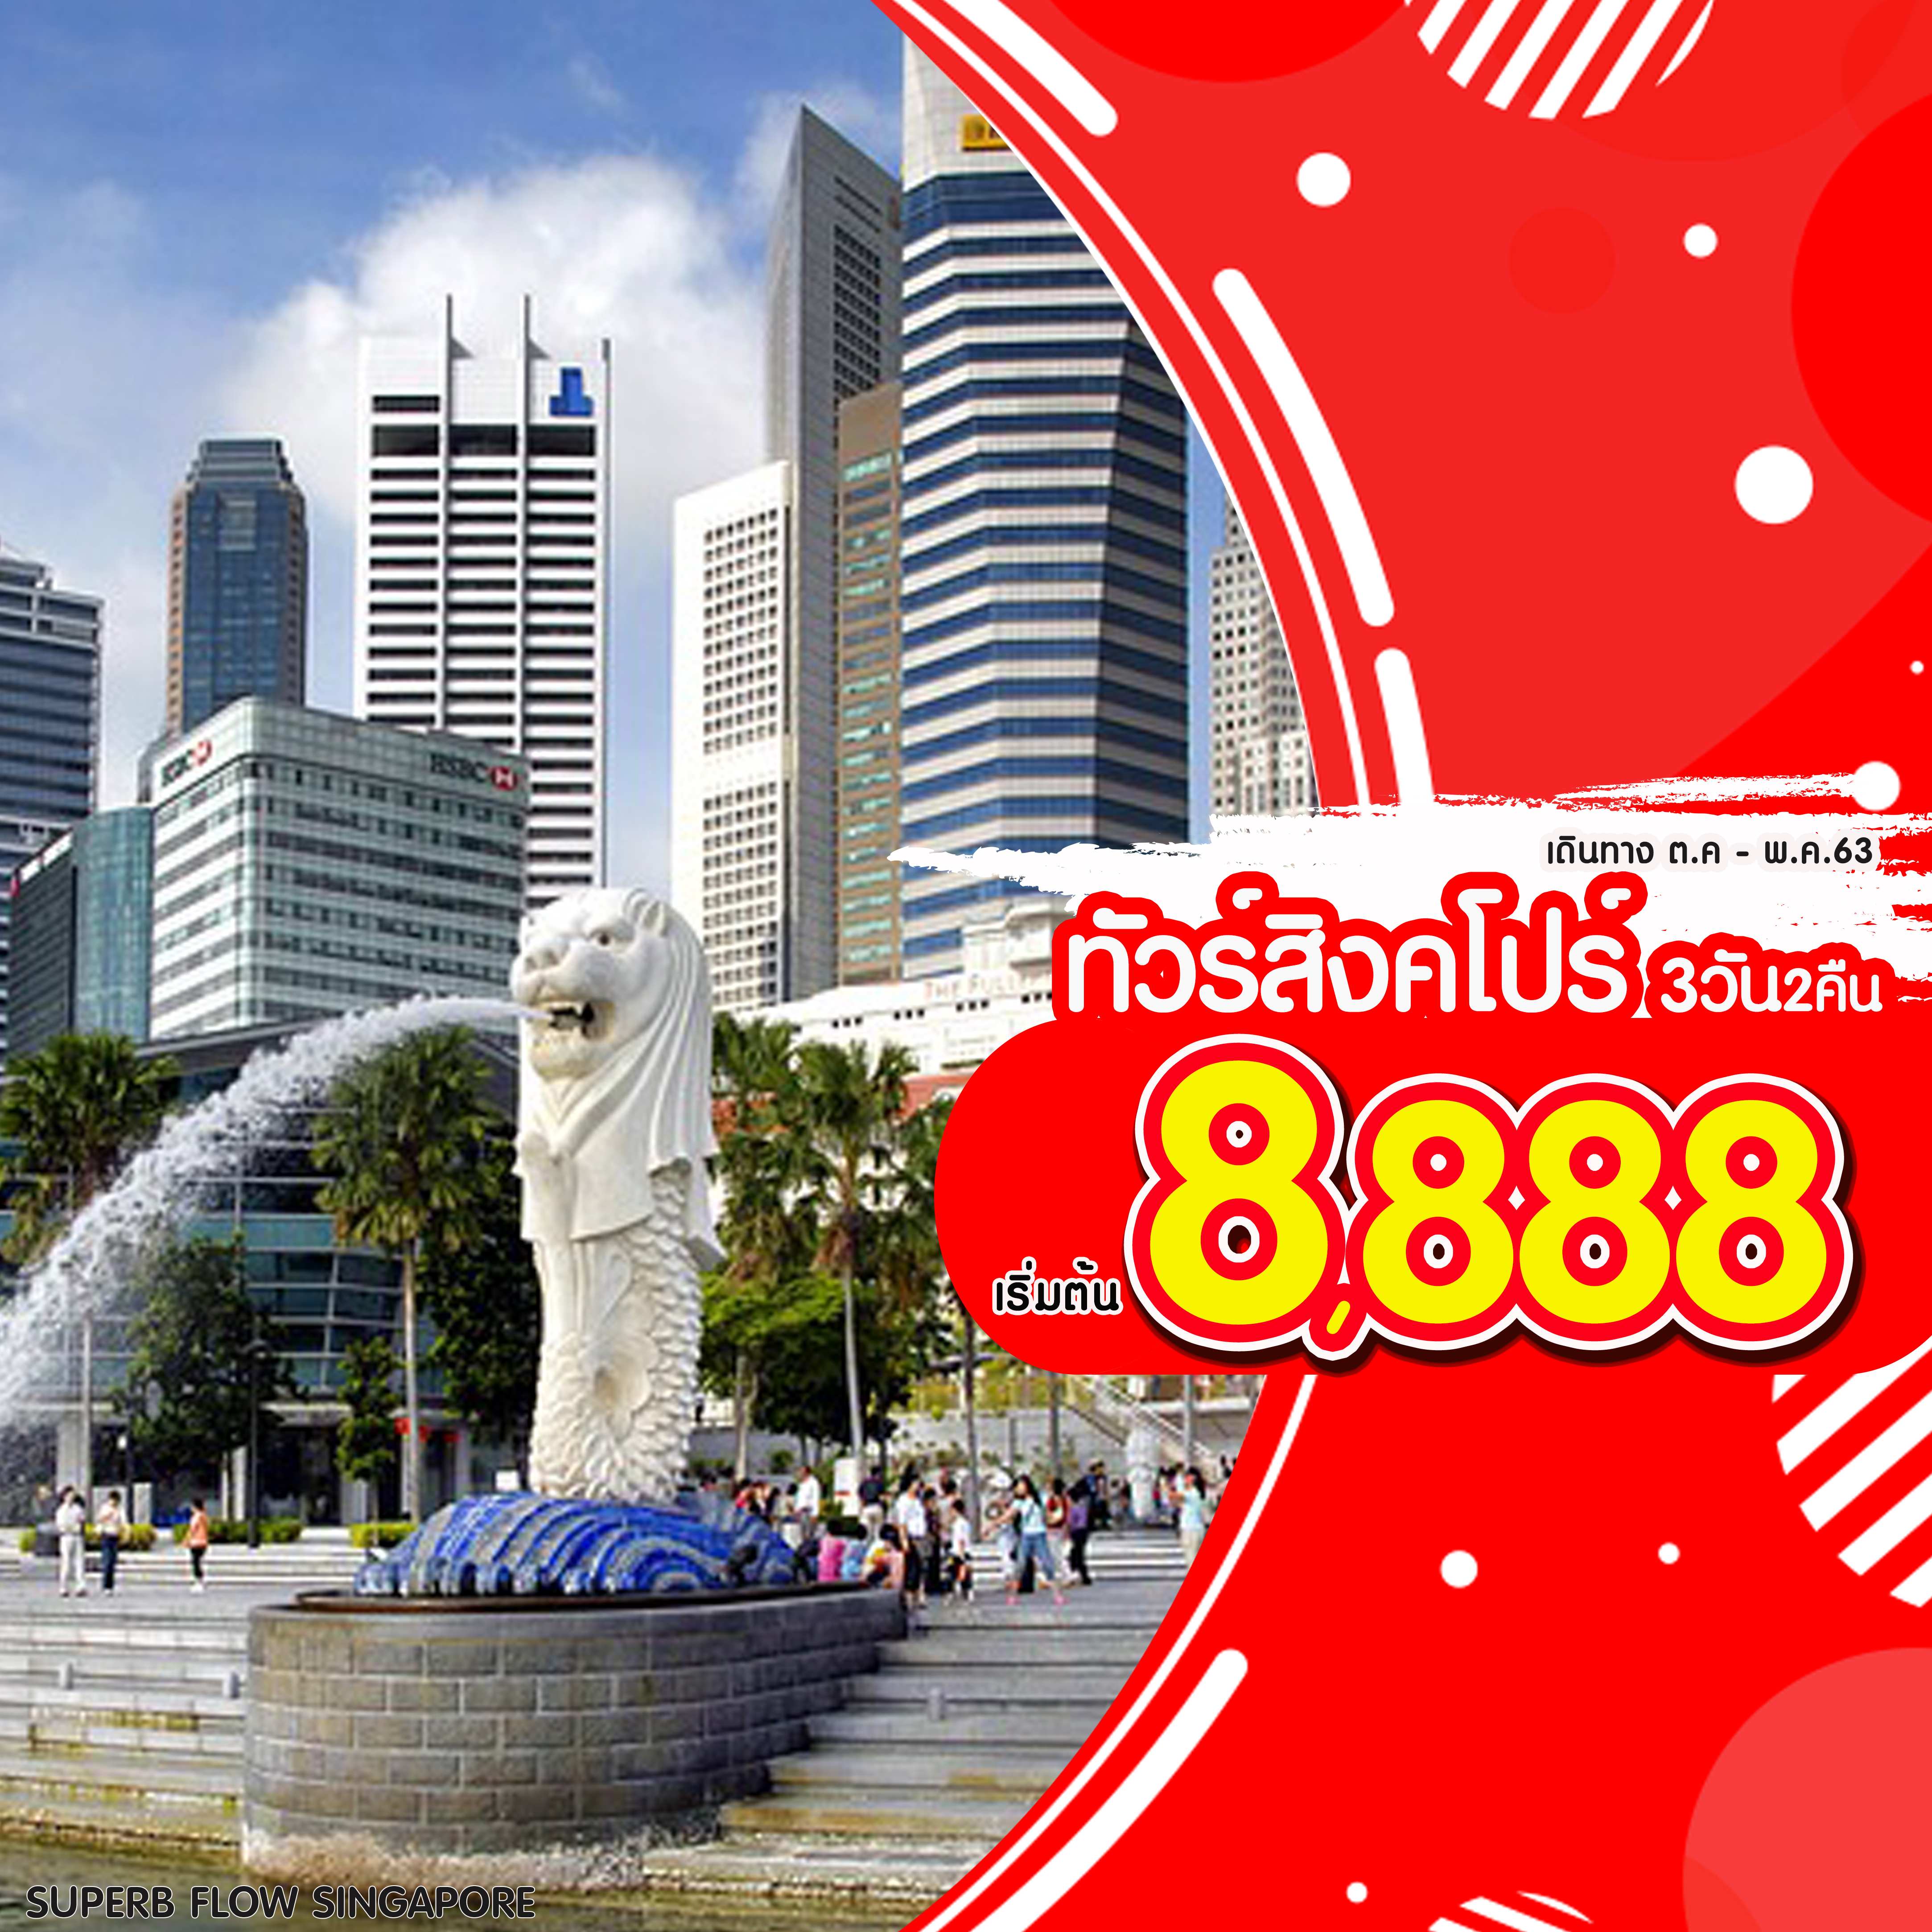 SUPERB FLOW SINGAPORE PLUS 3DAYS 2NIGHTS (SL) 